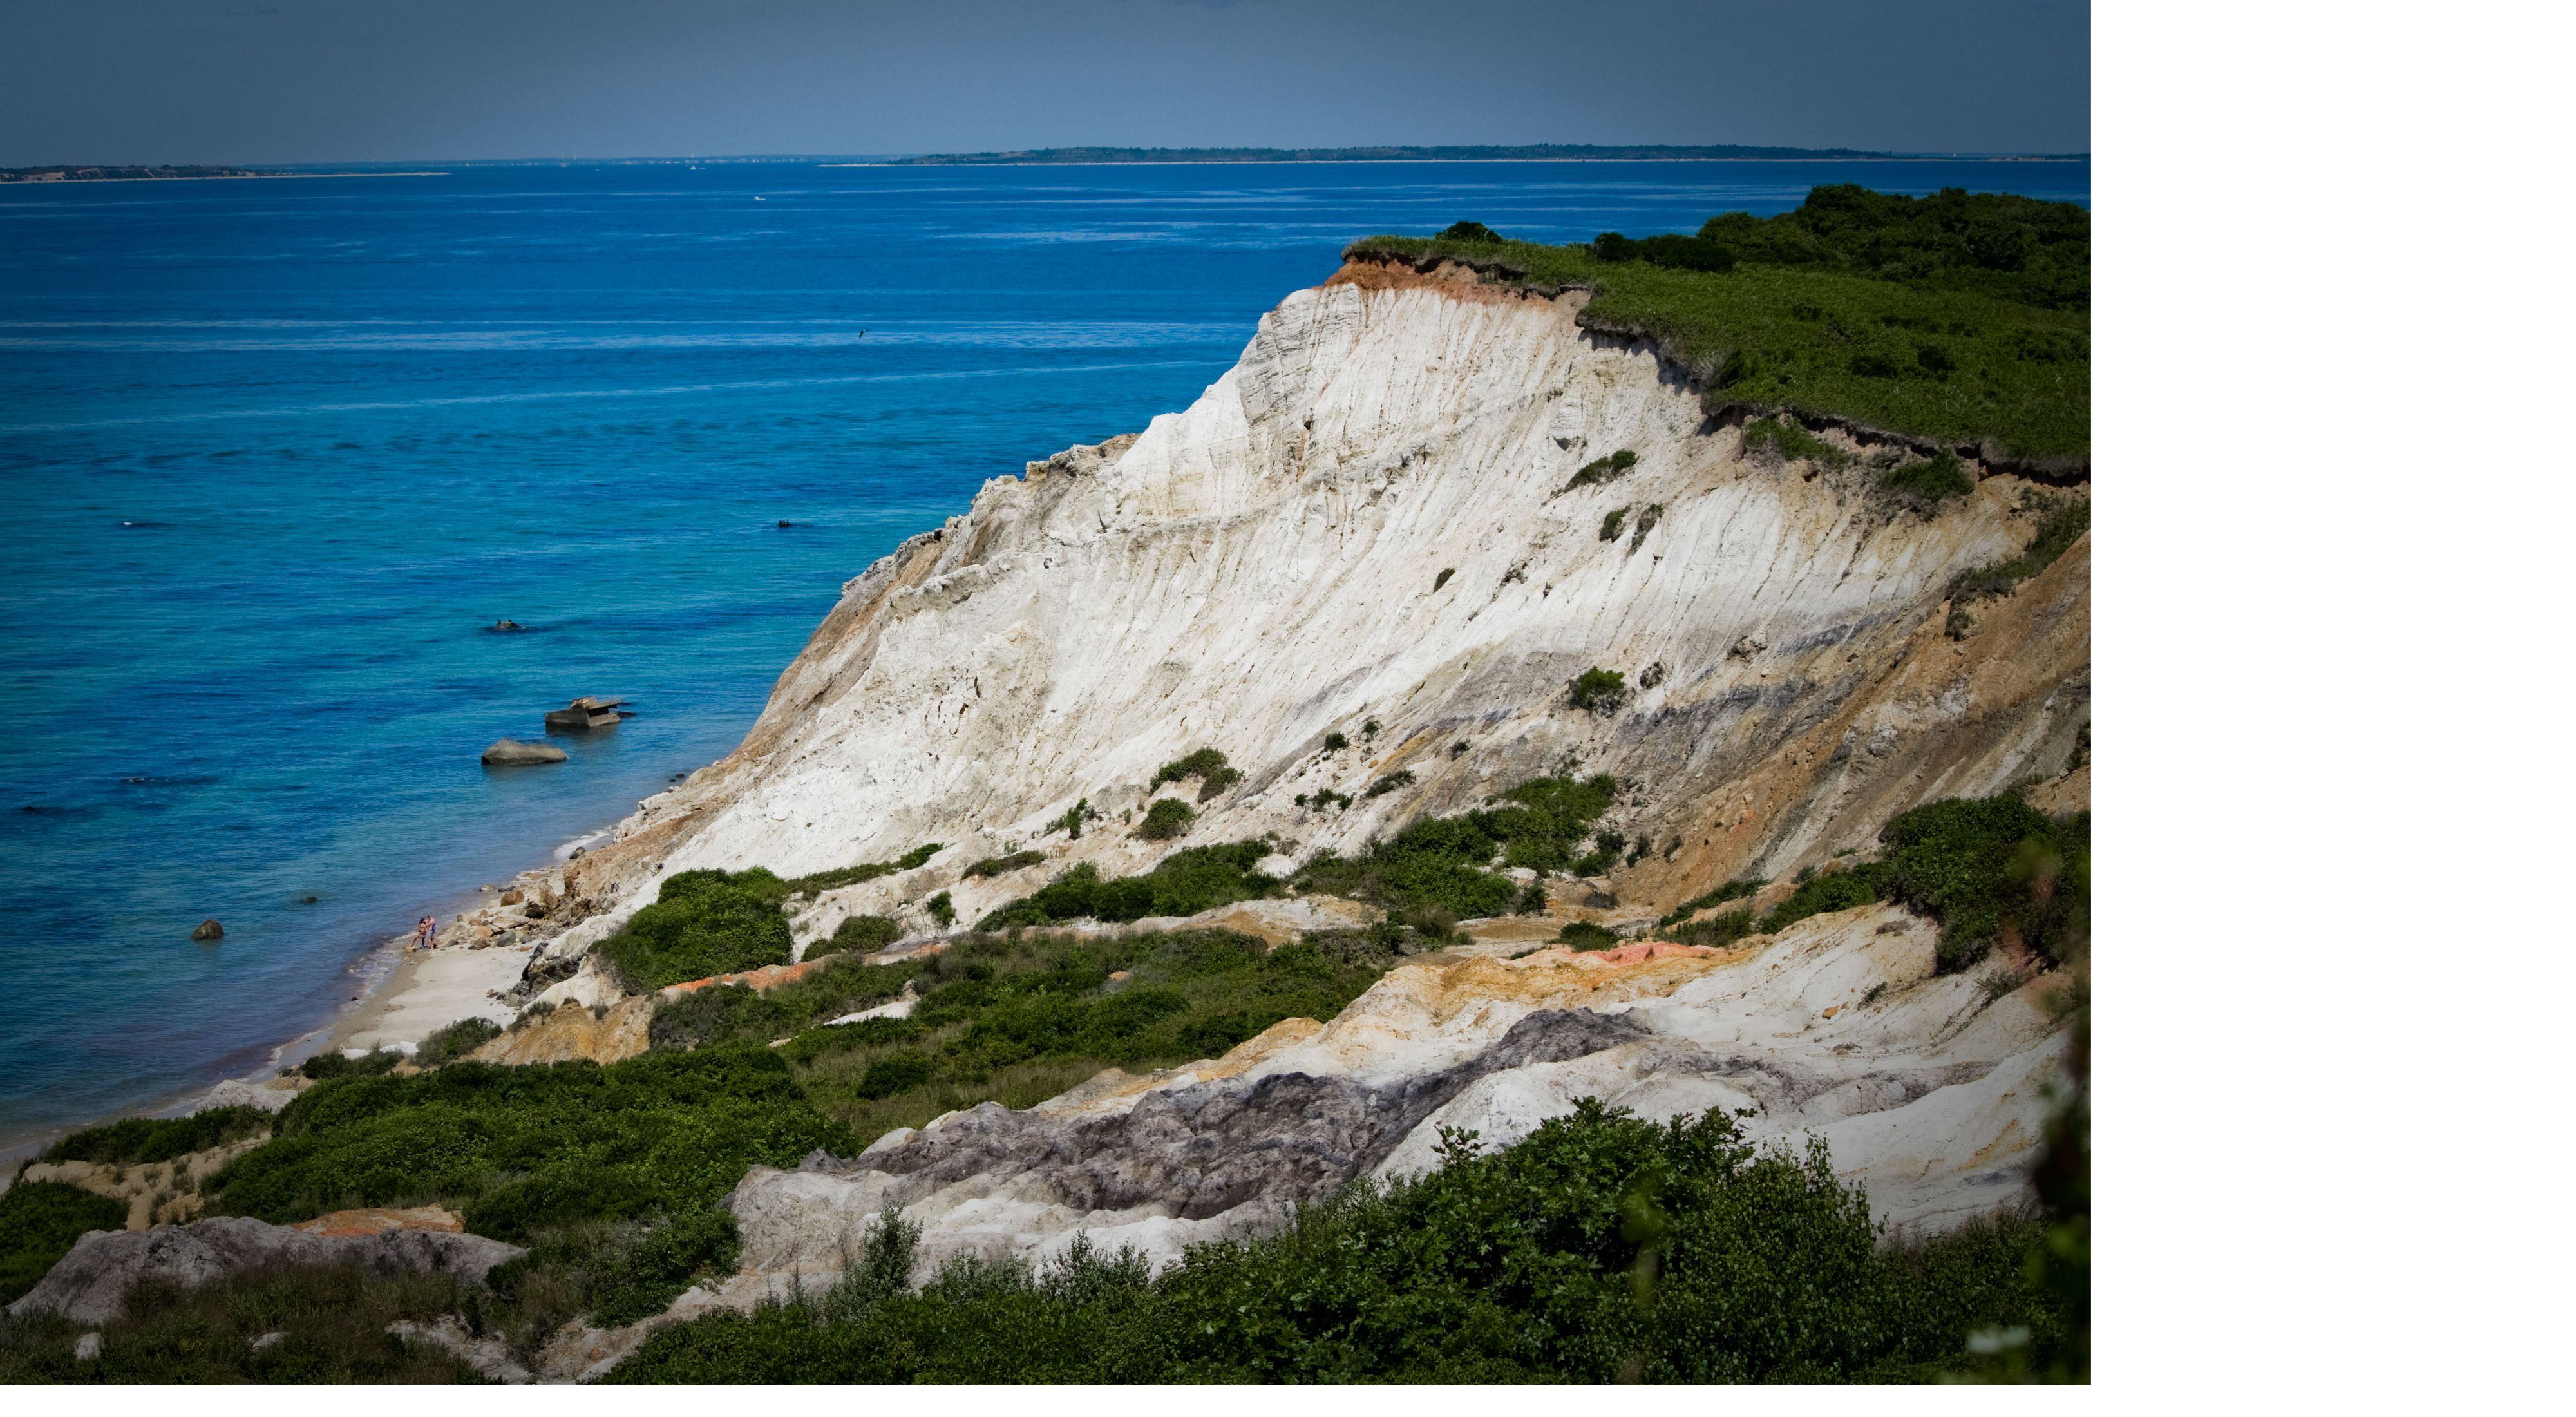 A view of Aquinnah Cliffs on Martha's Vineyard